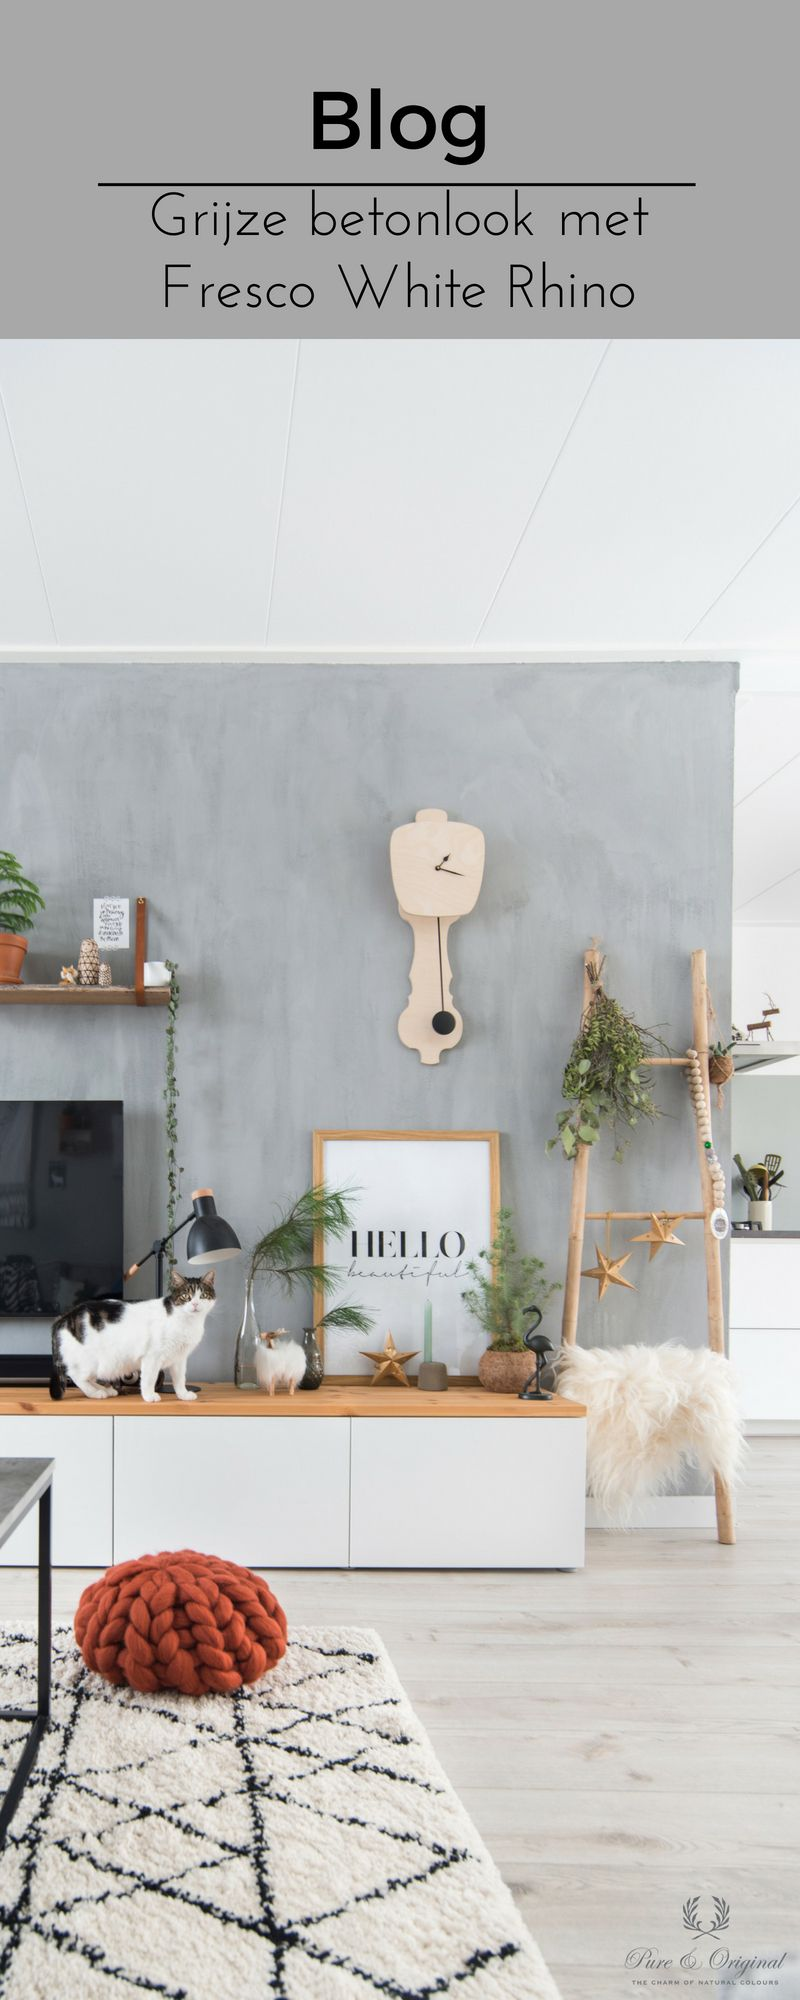 Betonlook Maken Jungle Betonlook In De Woonkamer In 2019 Blog Pure Original